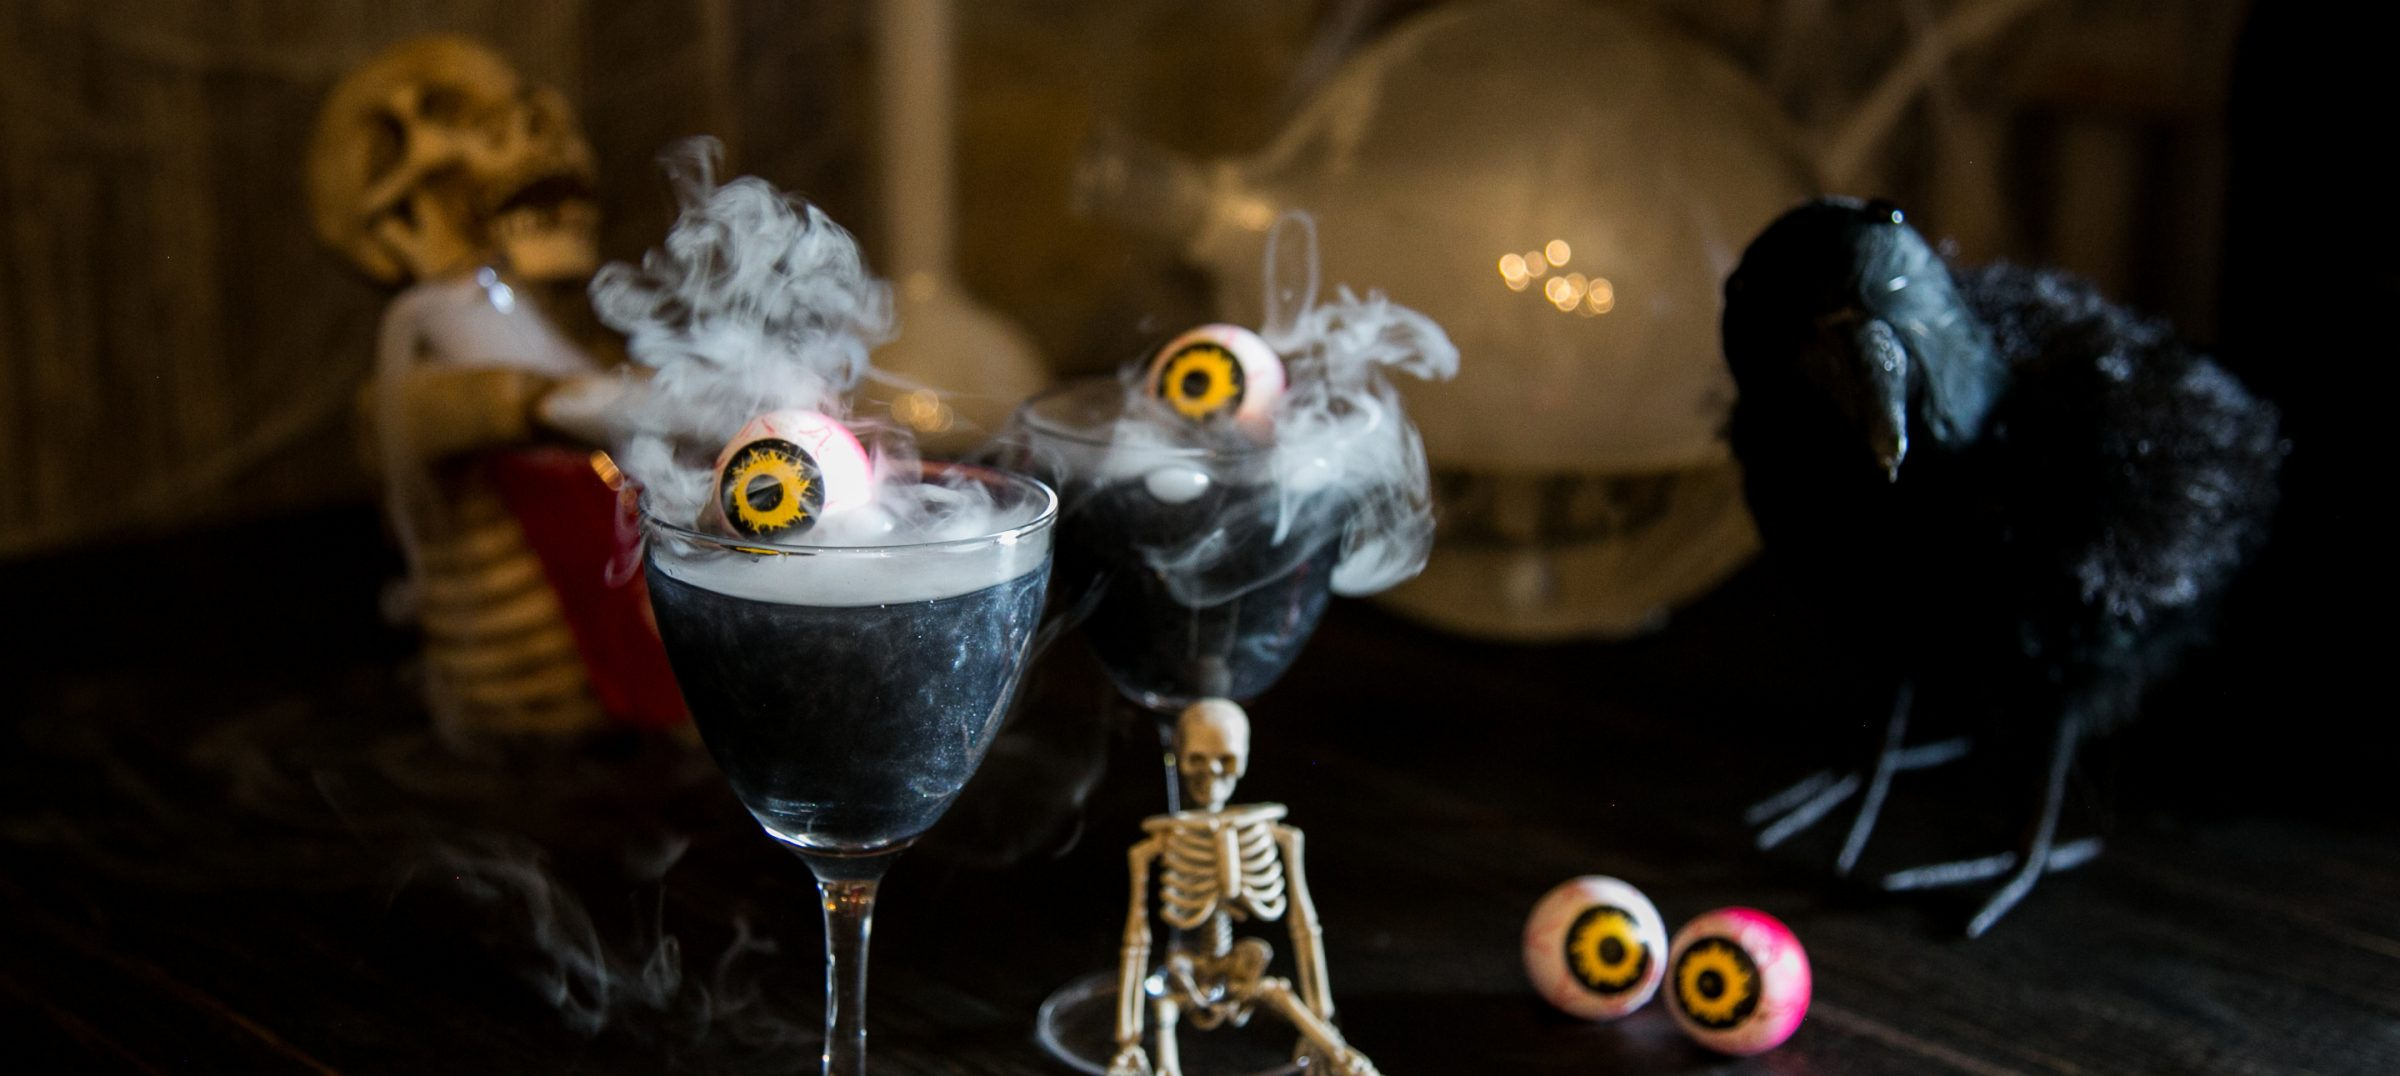 7 Easy Halloween Cocktail Recipes You Can Make at Home